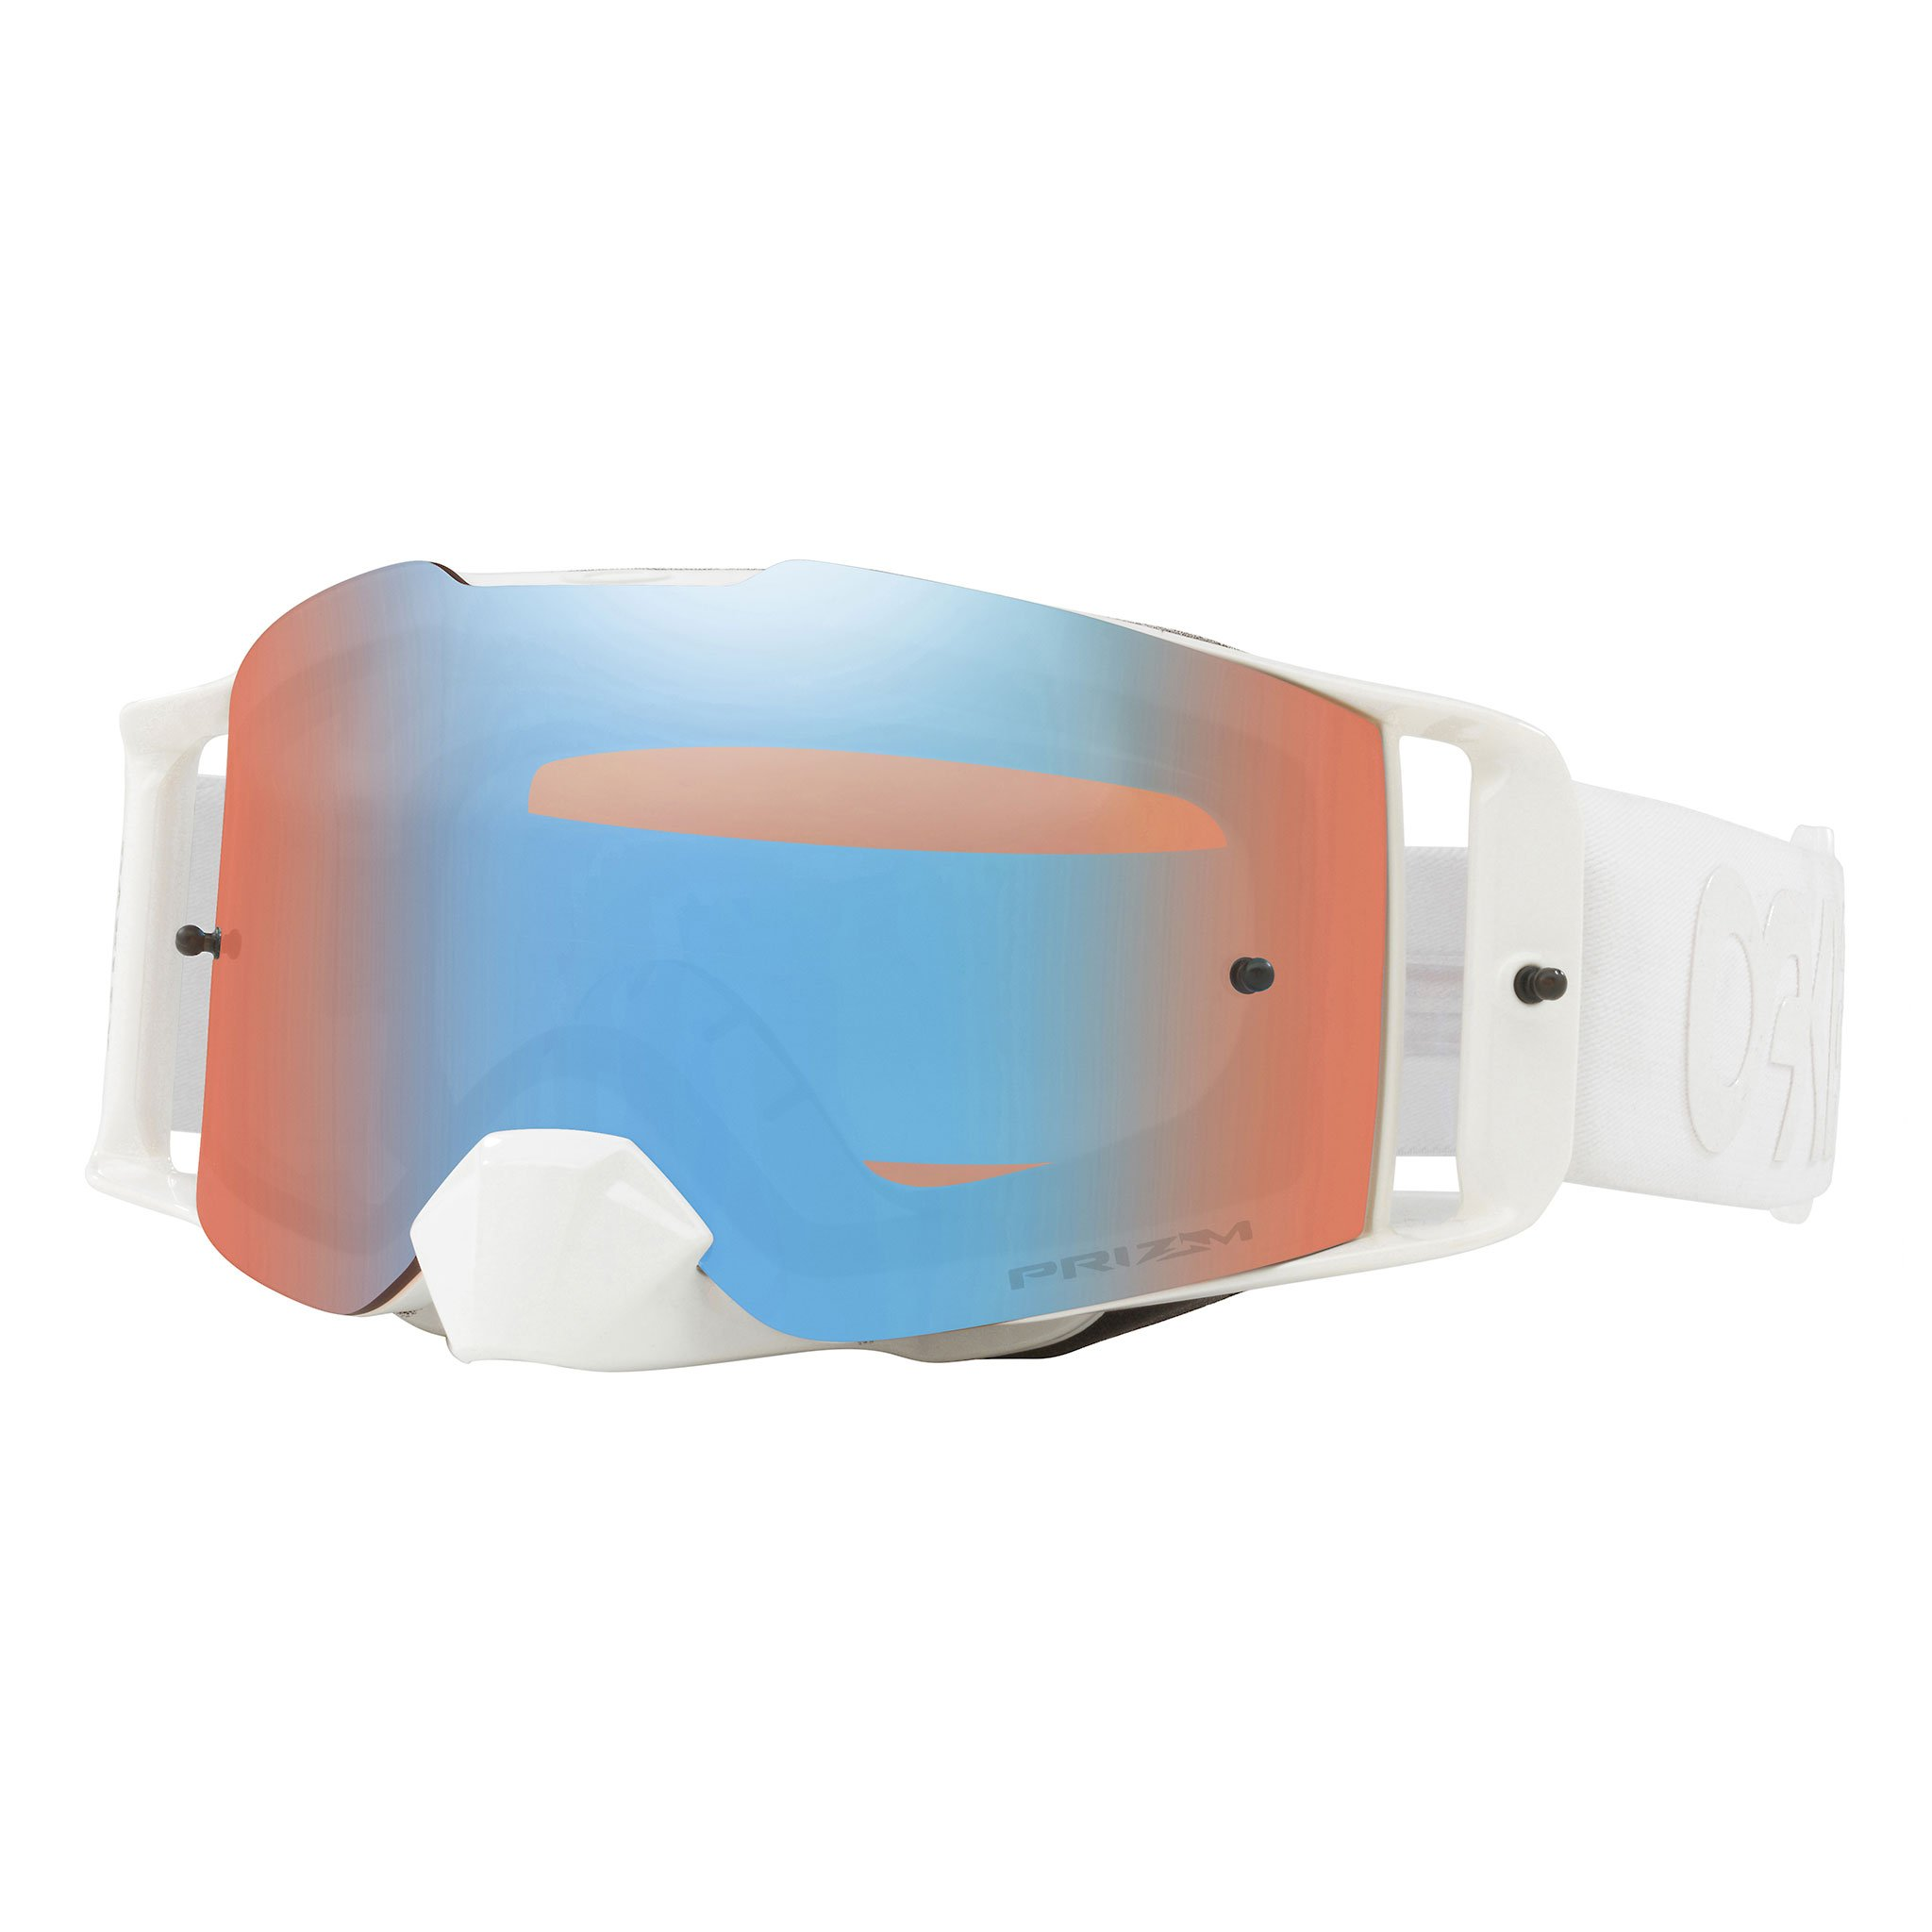 Oakley Front Line MX FP Whiteout with PrzmMXSaphr unisex-adult Goggles (White, Large), 1 Pack